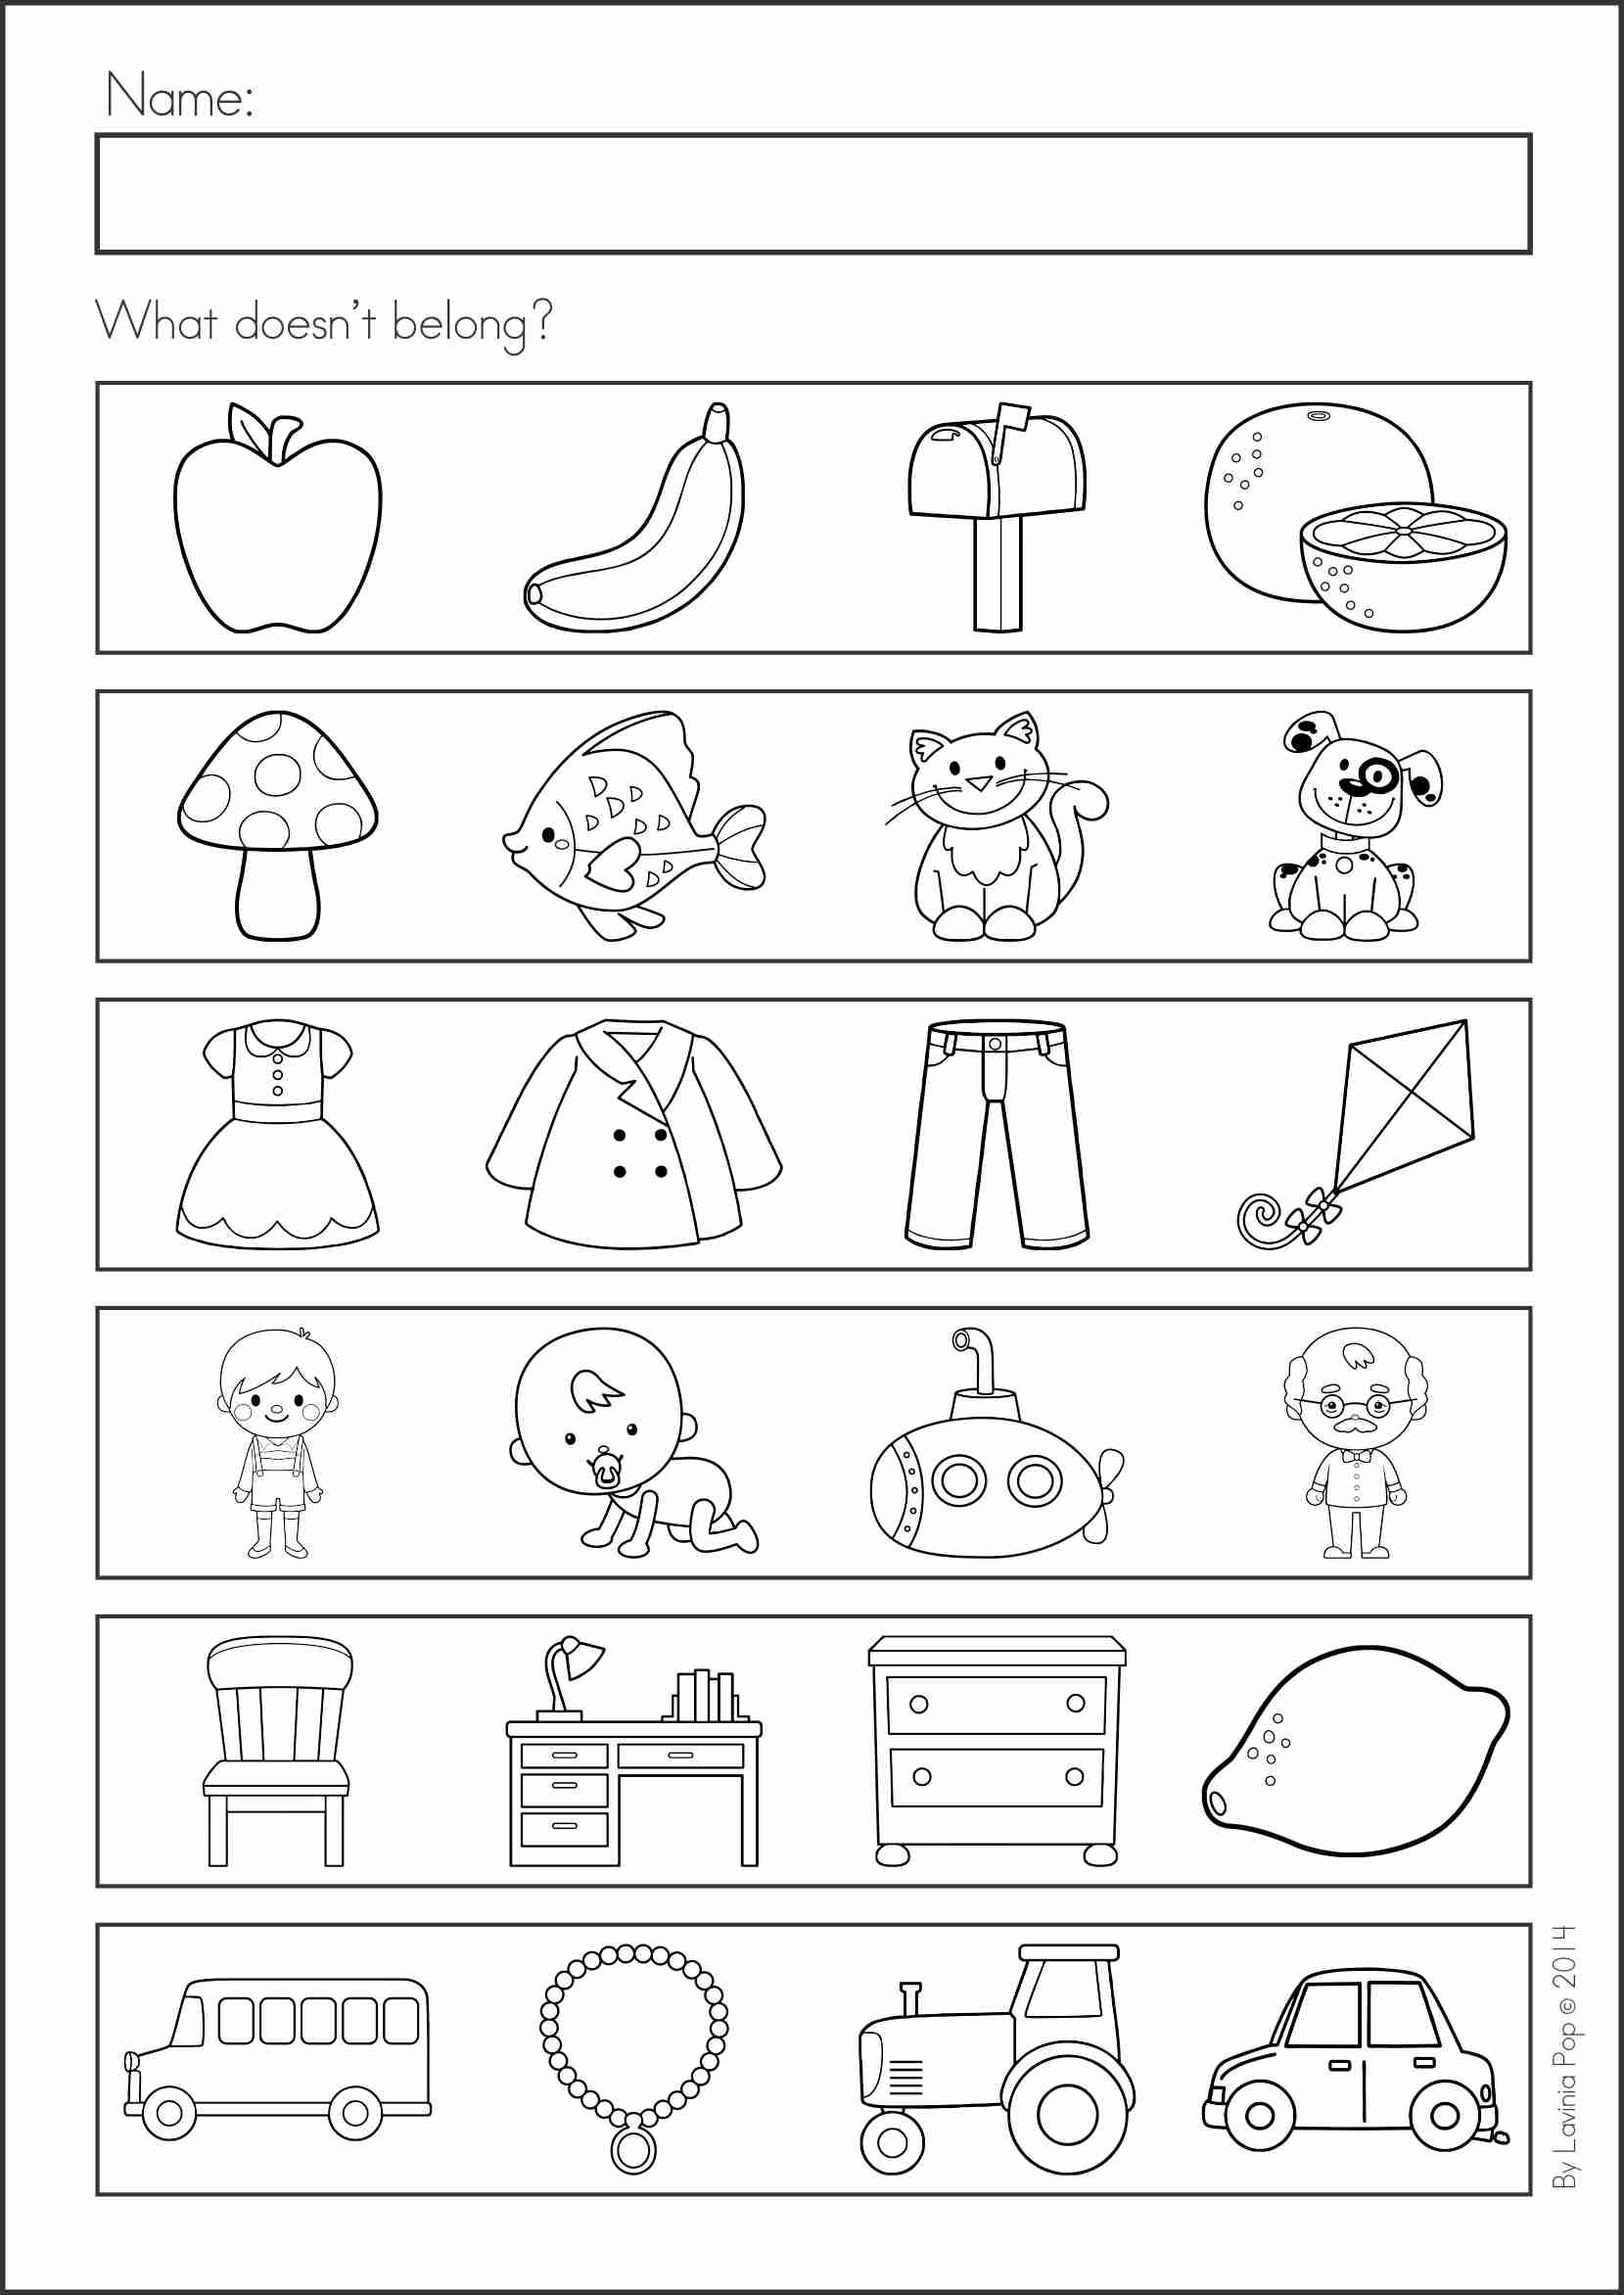 worksheet Kindergarten Back To School Worksheets back to school math literacy worksheets and activities no prep kindergarten 135 pages a page